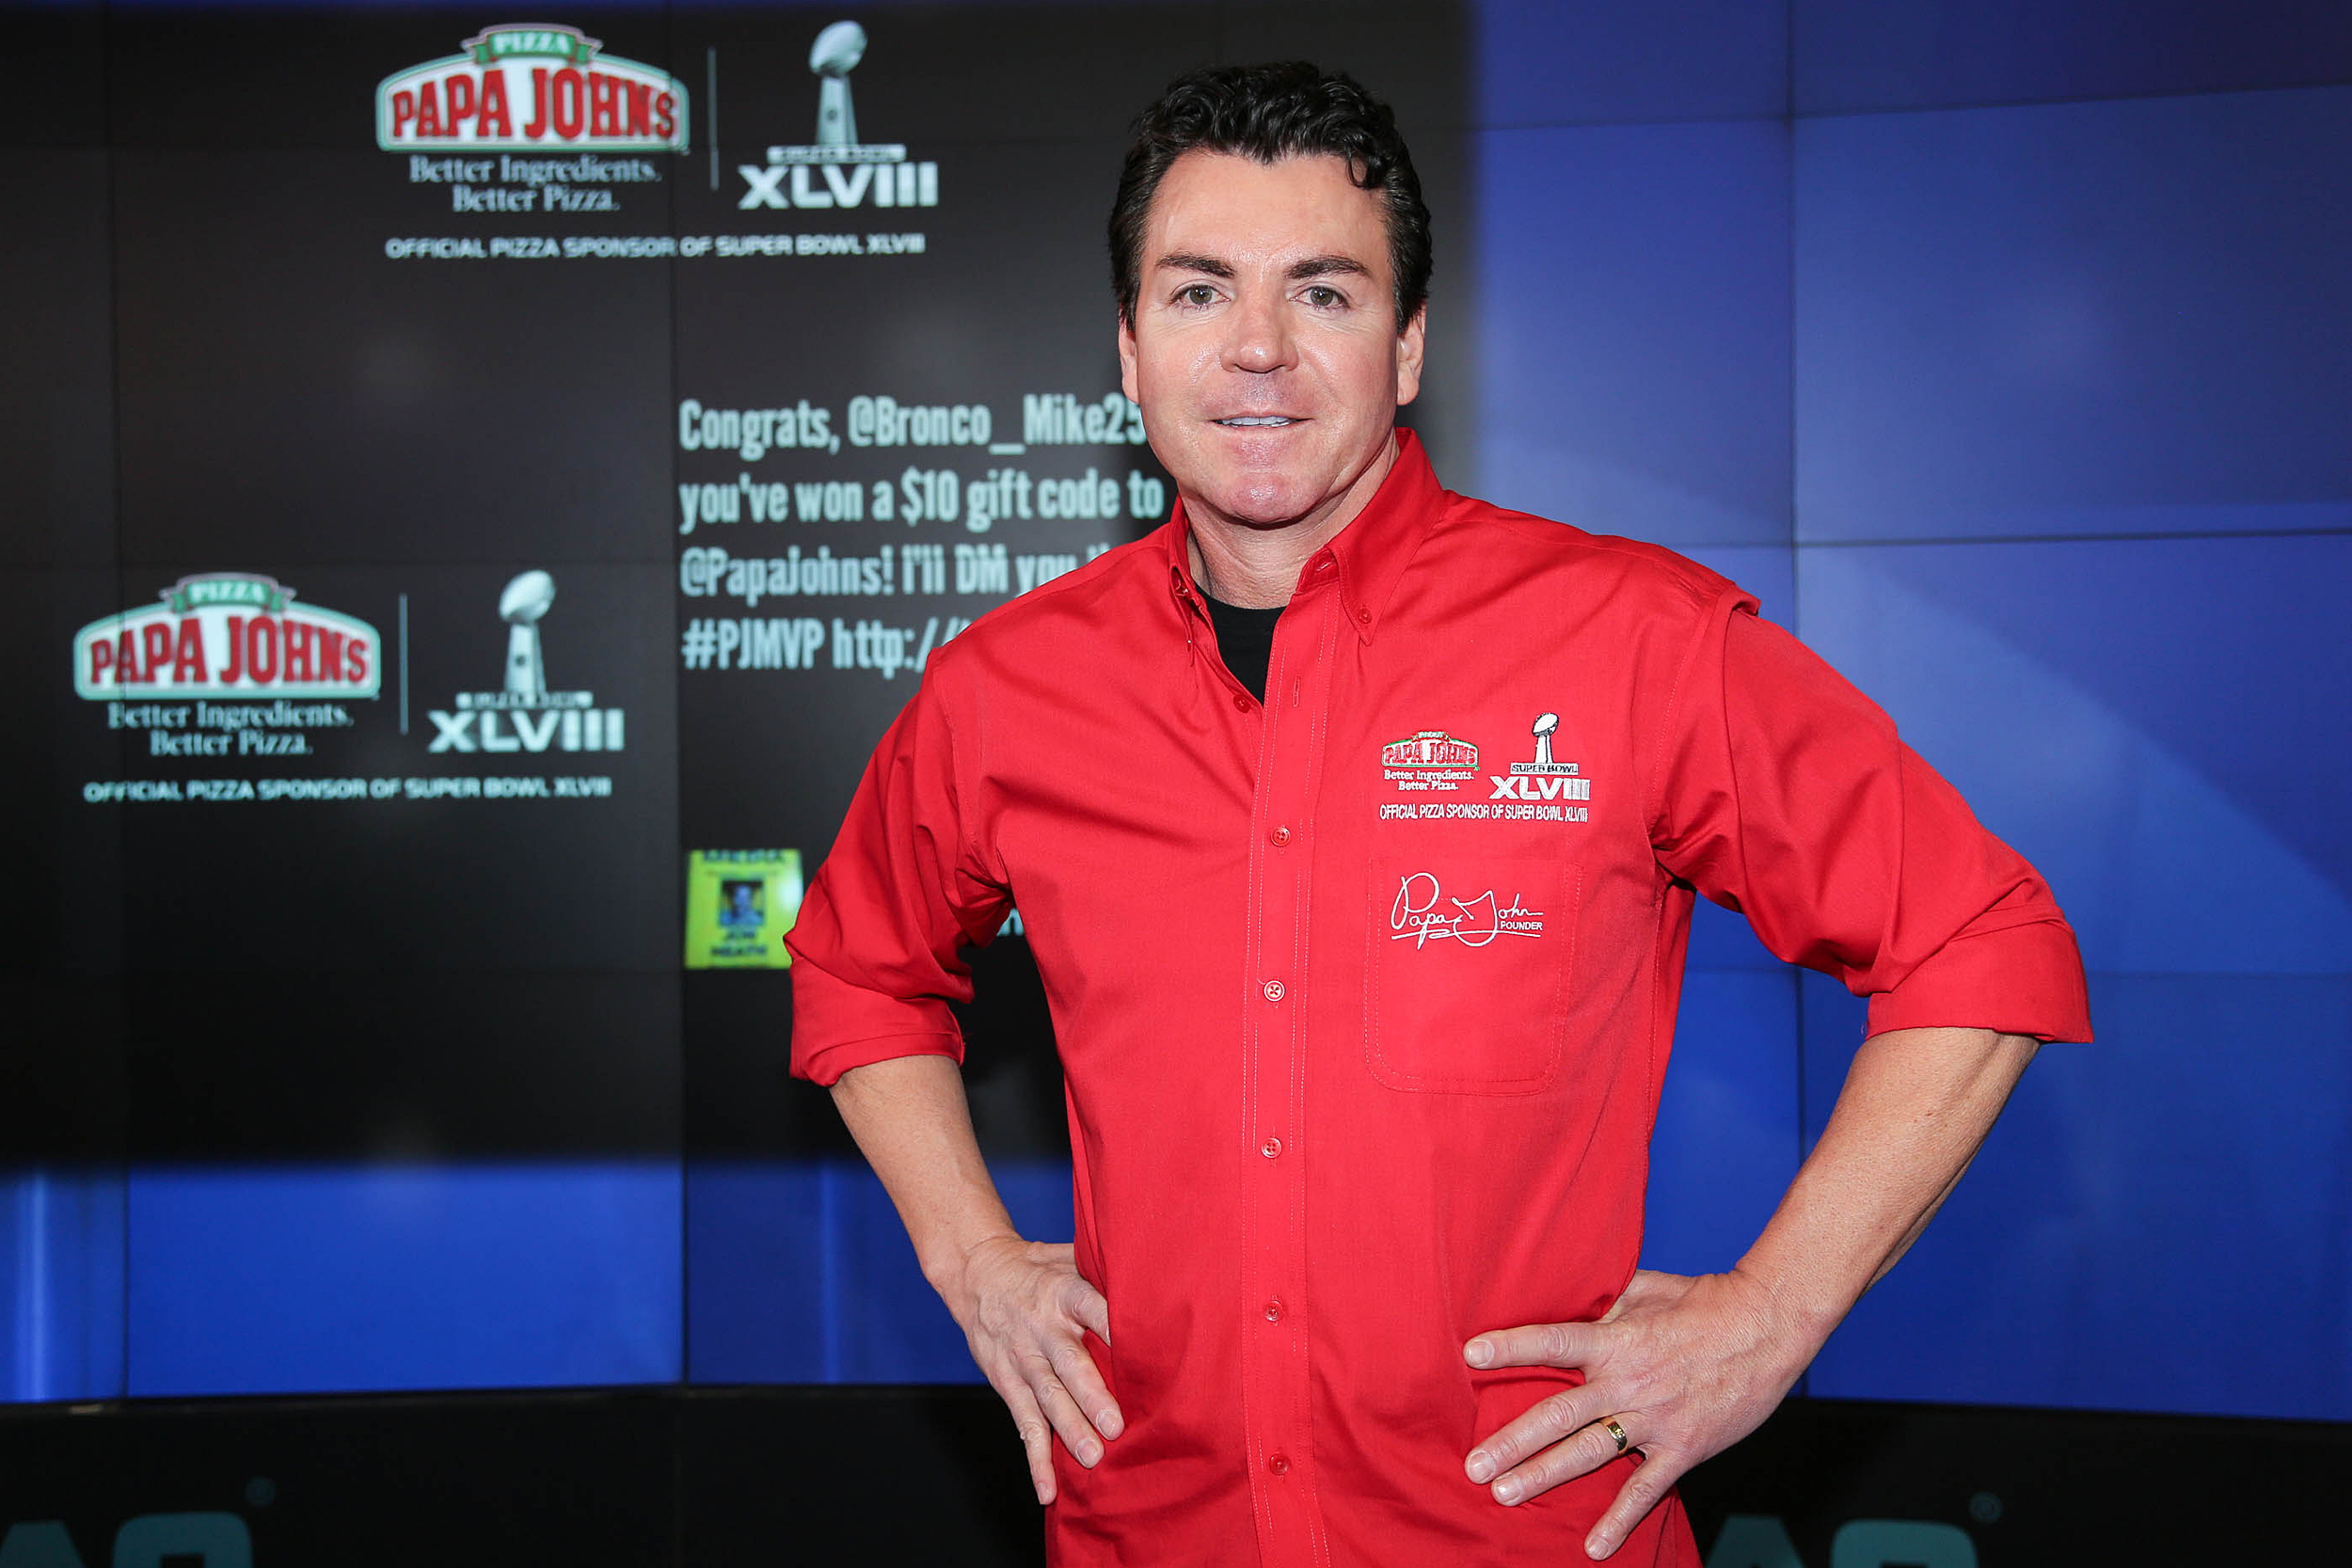 Papa-John's-founder-resigns-as-chairman-of-the-board-amid-backlash